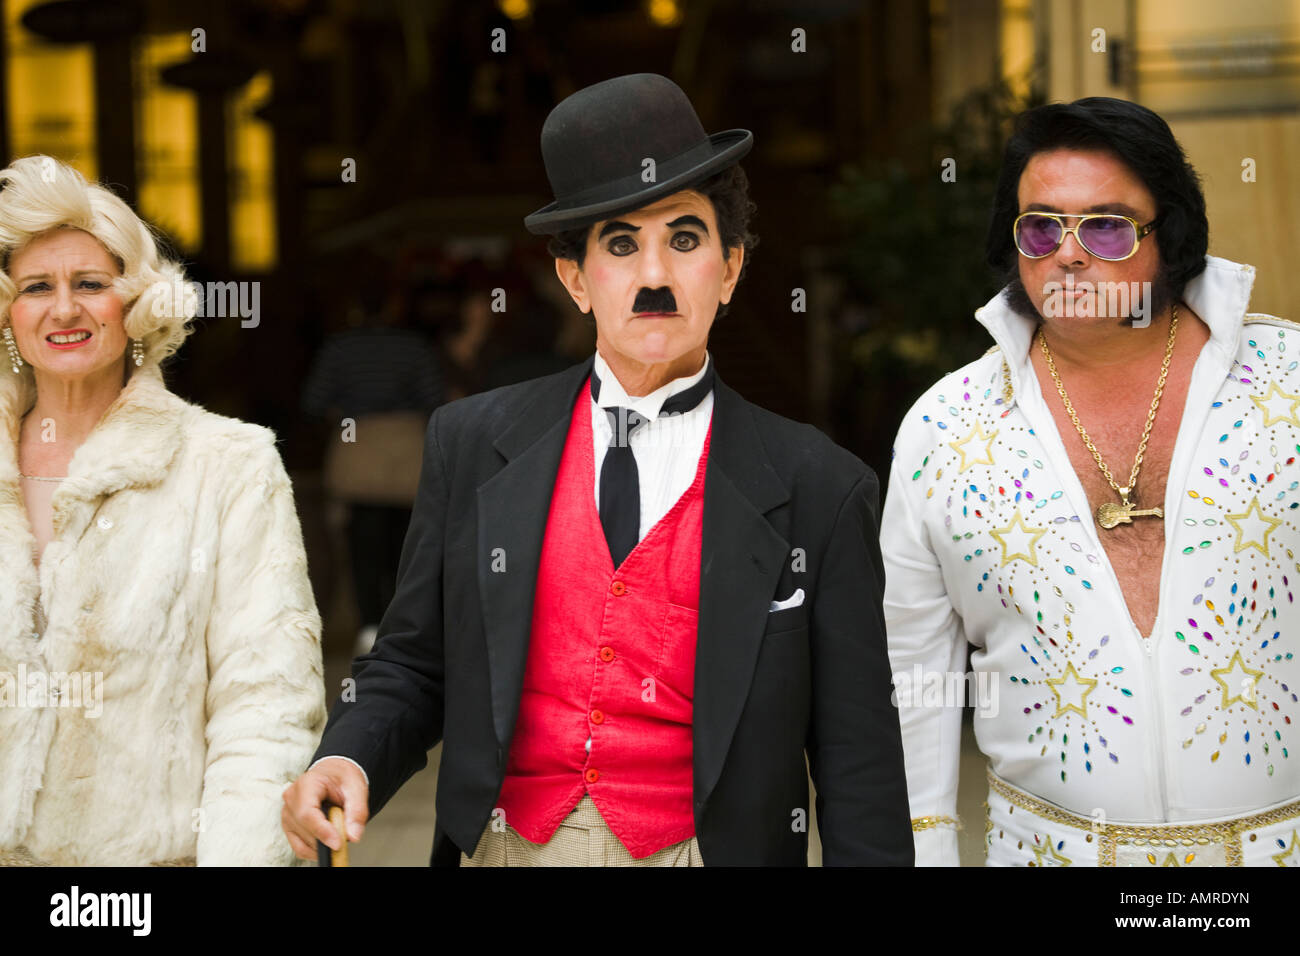 Celebrity Impersonators Charlie Chaplin Marilyn Monroe and Elvis on Hollywood Boulevard - Stock Image